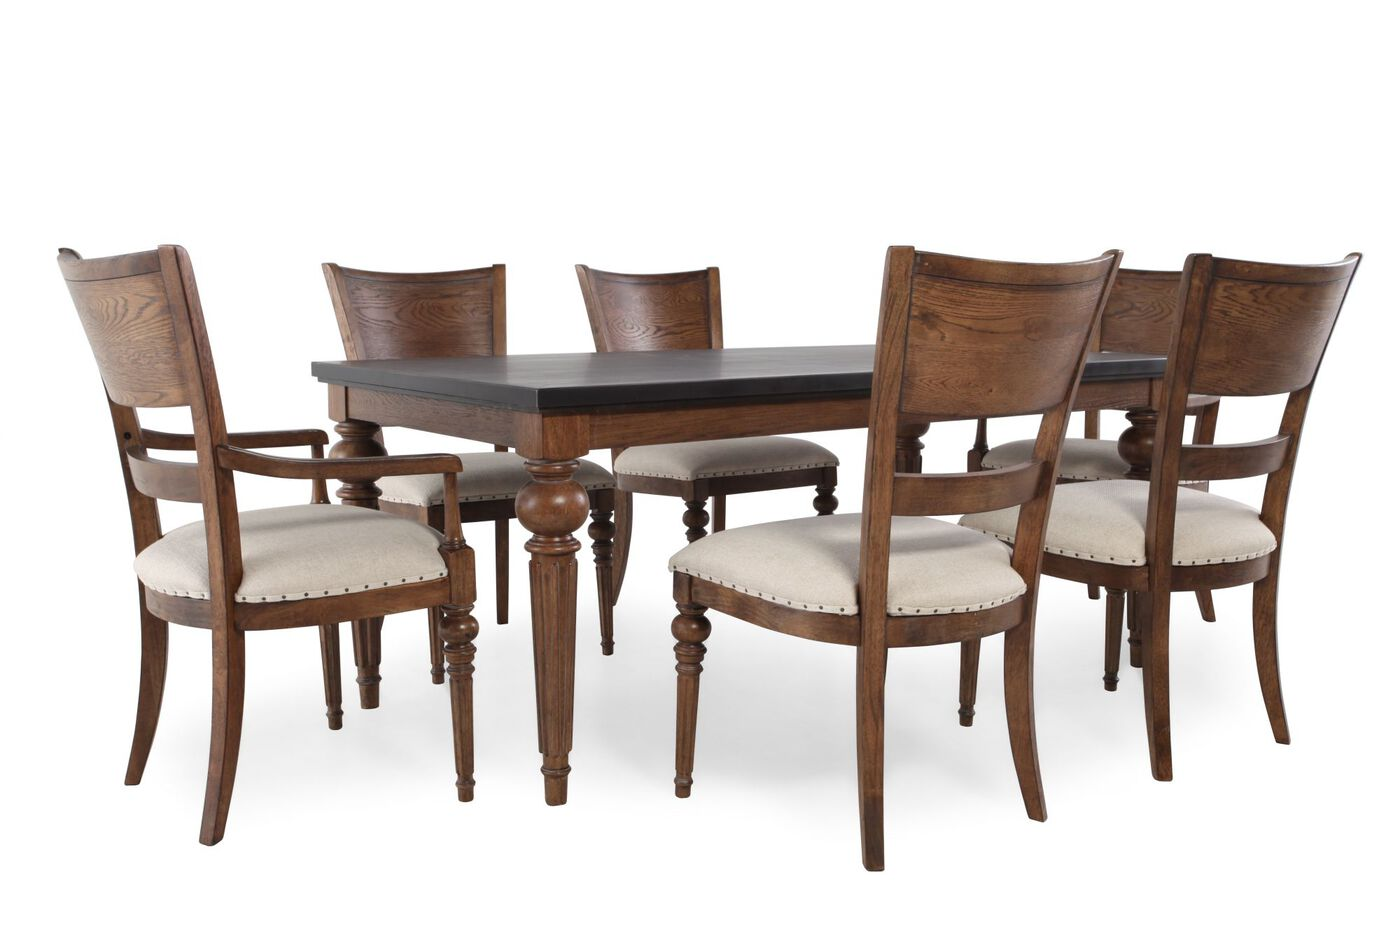 Universal New Bohemien Coffee House Seven Piece Dining Set Mathis Brothers Furniture